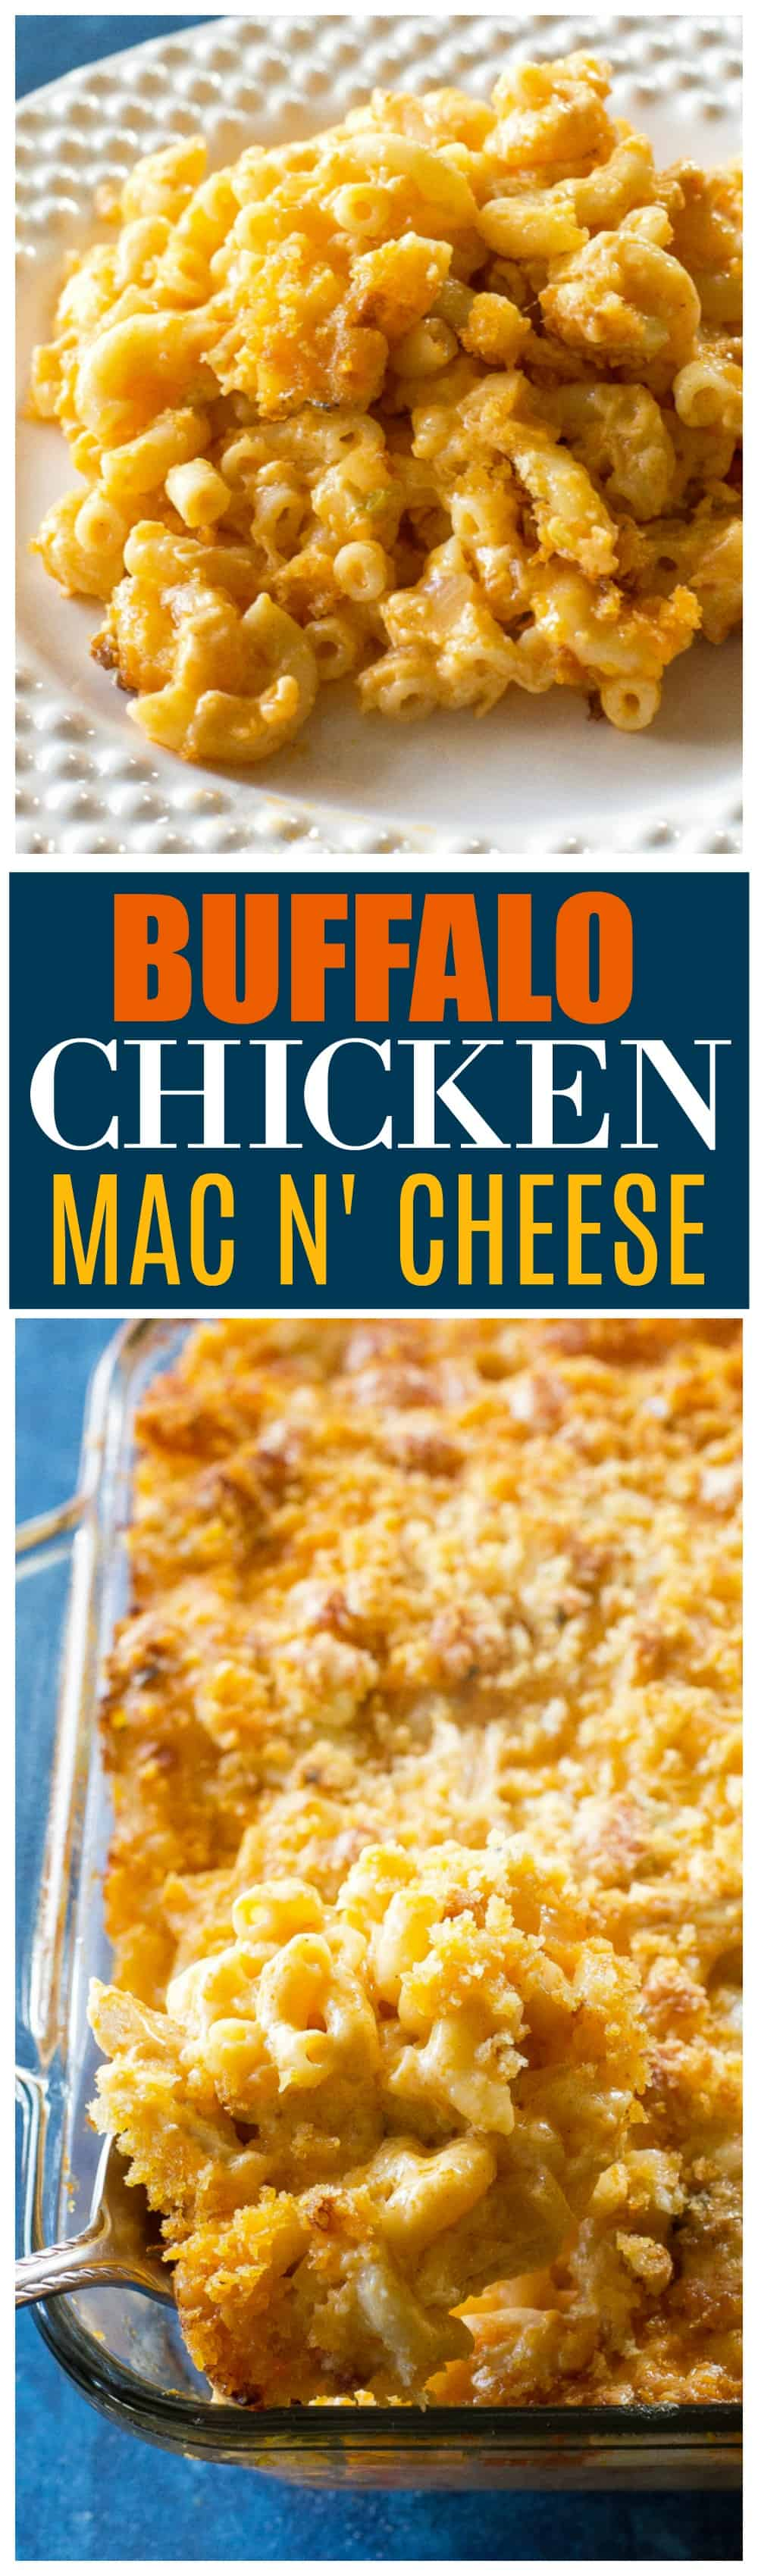 Buffalo chicken macaroni and cheese related posts forumfinder Choice Image